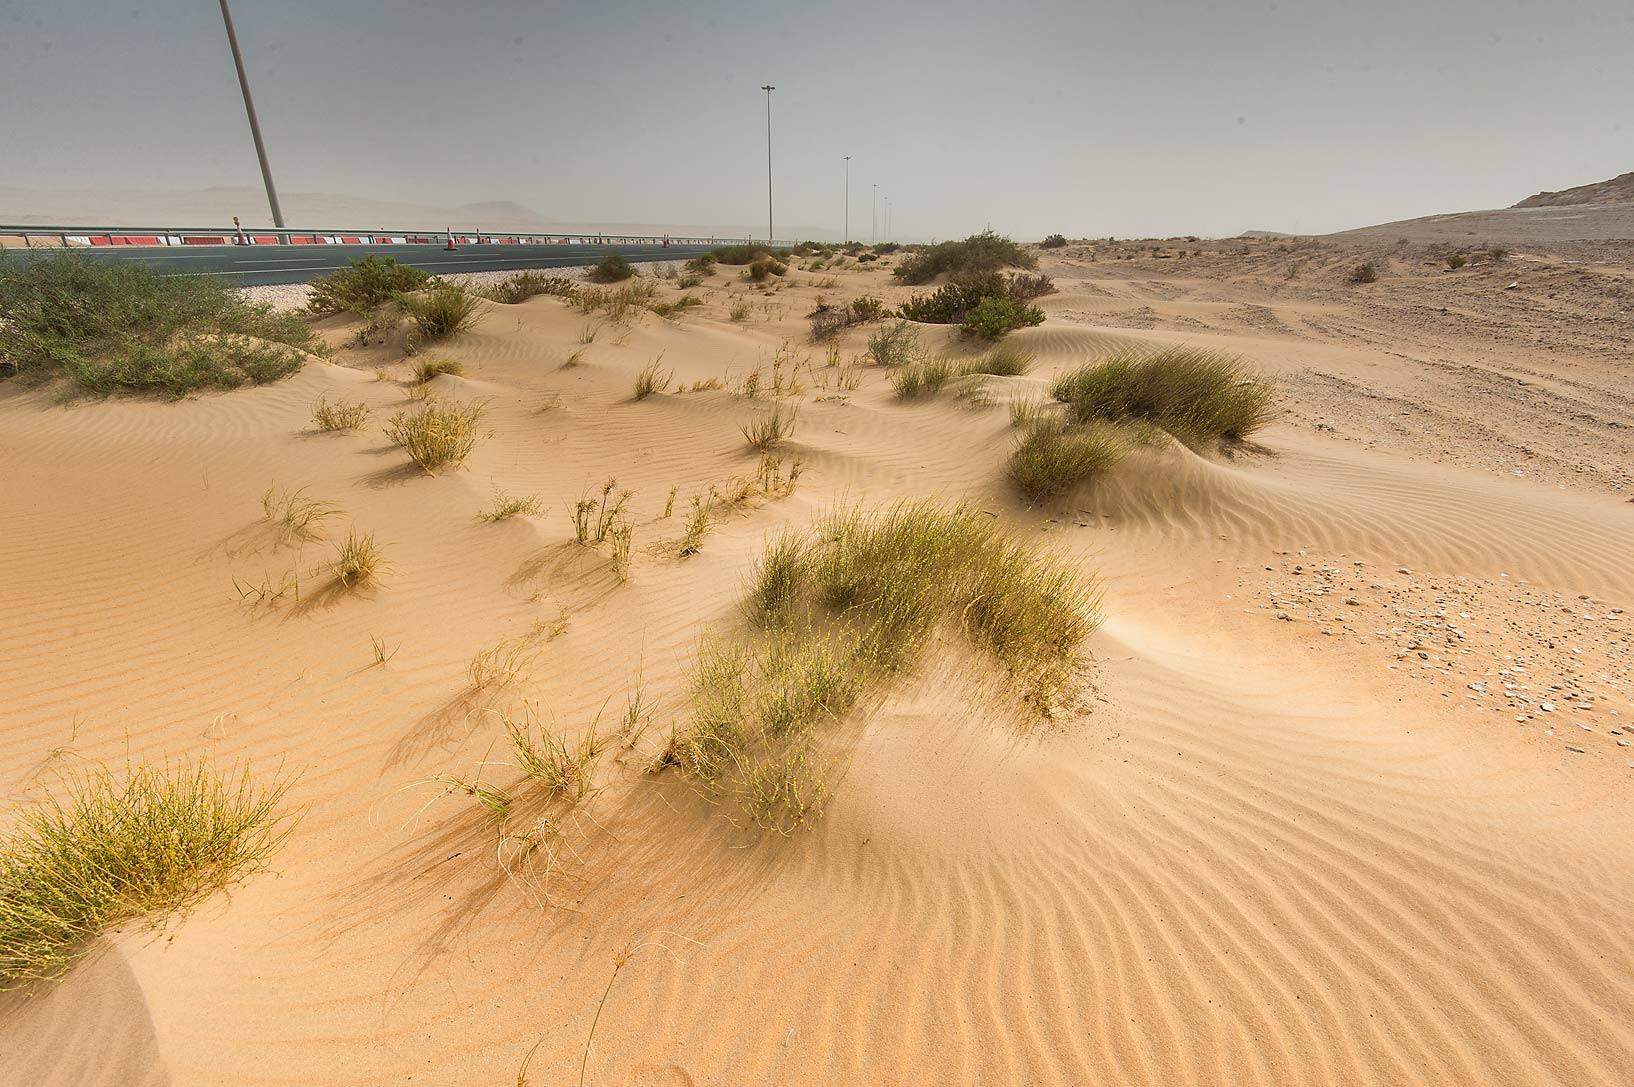 Habitat of Dipterygium glaucum in windblown sand...area of Rawdat Ekdaim. Southern Qatar